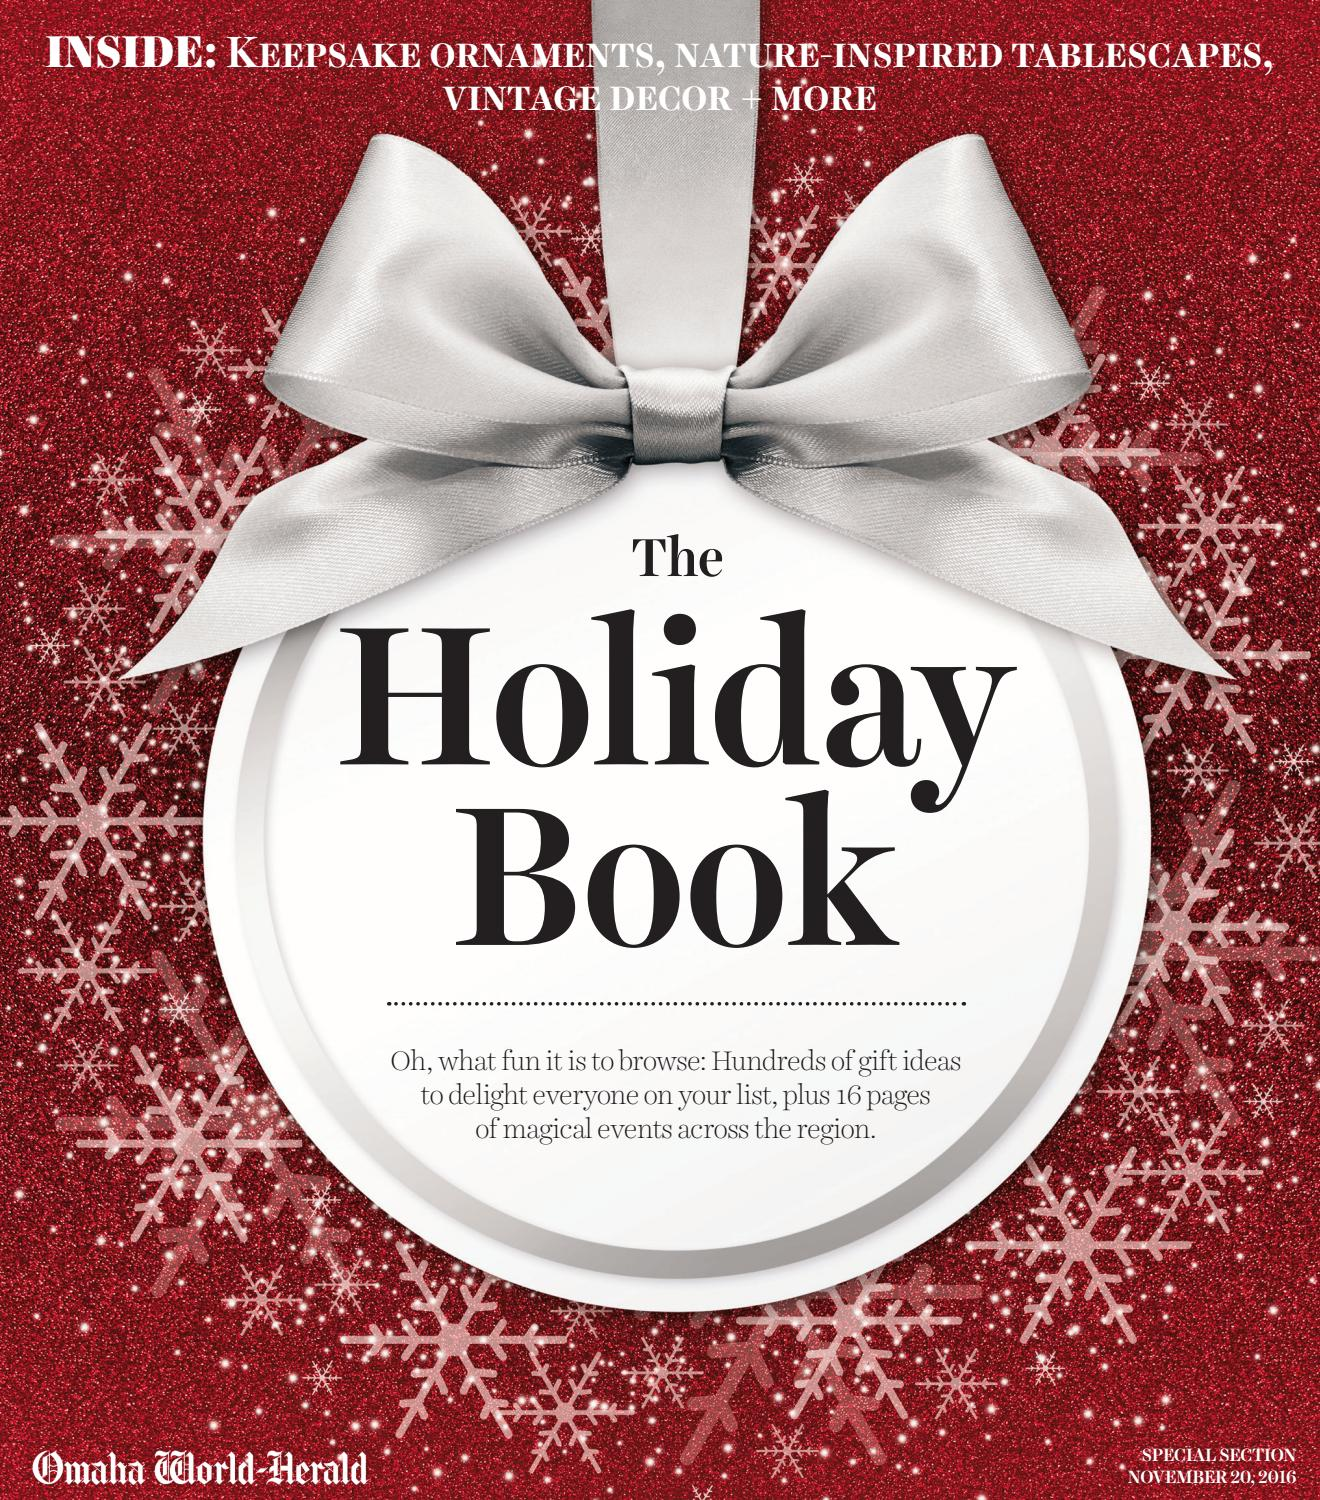 The Holiday Book By Omaha World Herald